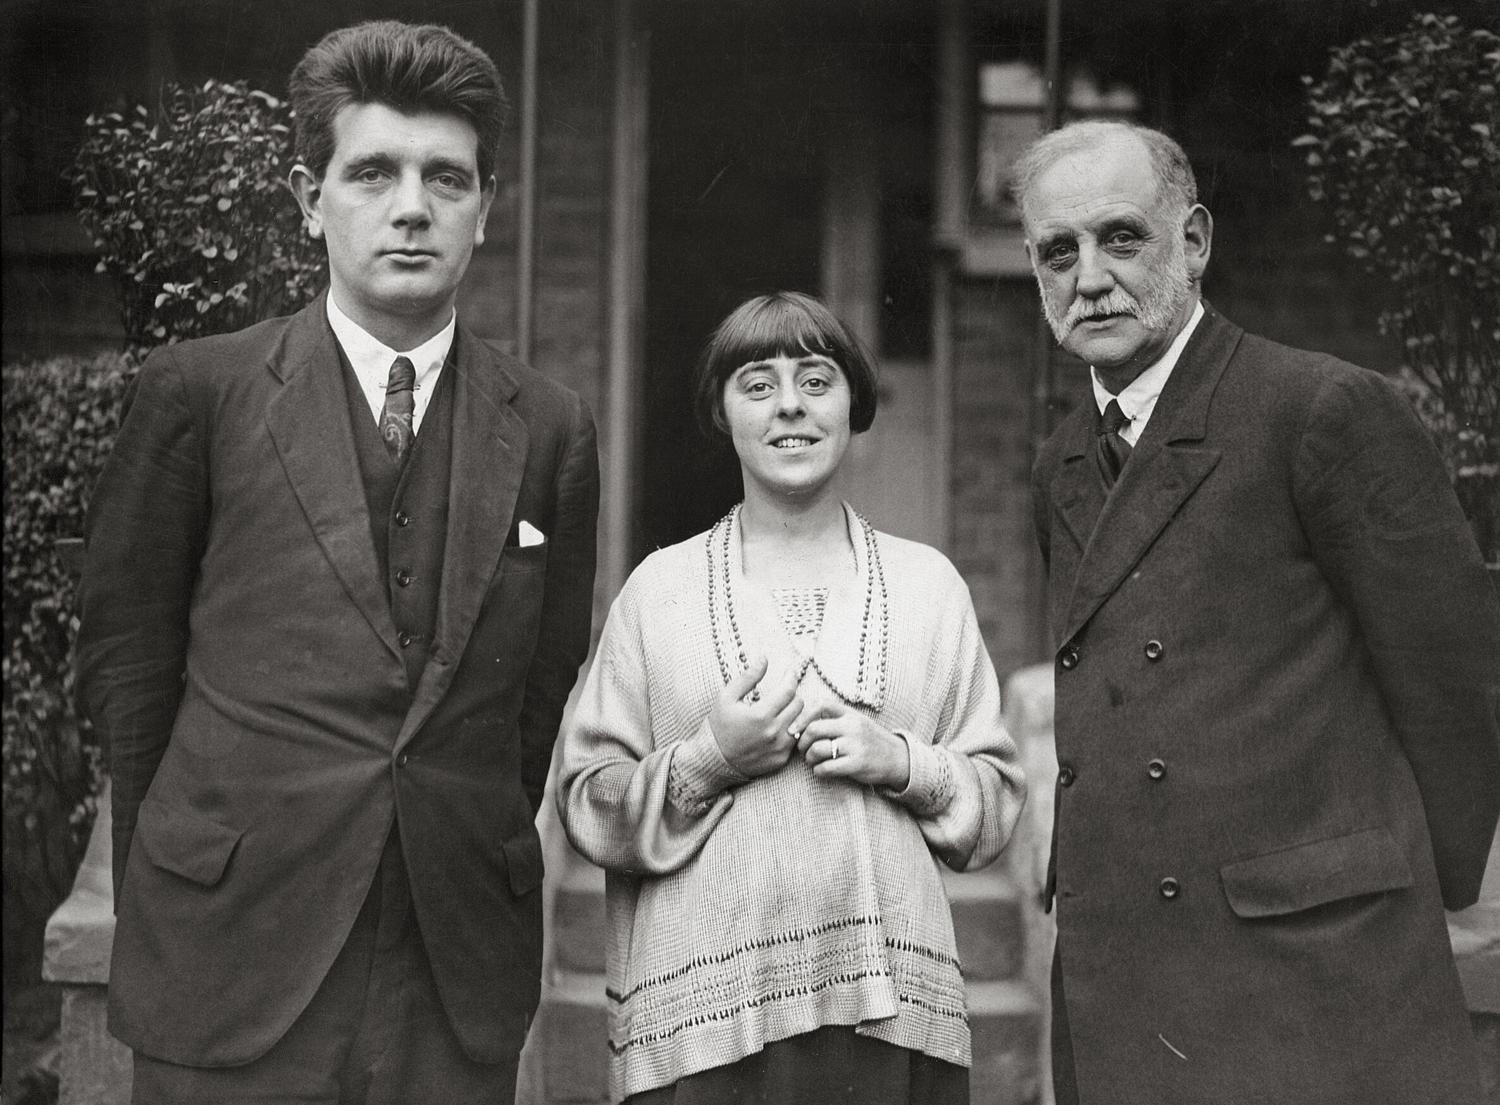 Minnie Lansbury with George Lansbury and Edgar Lansbury.